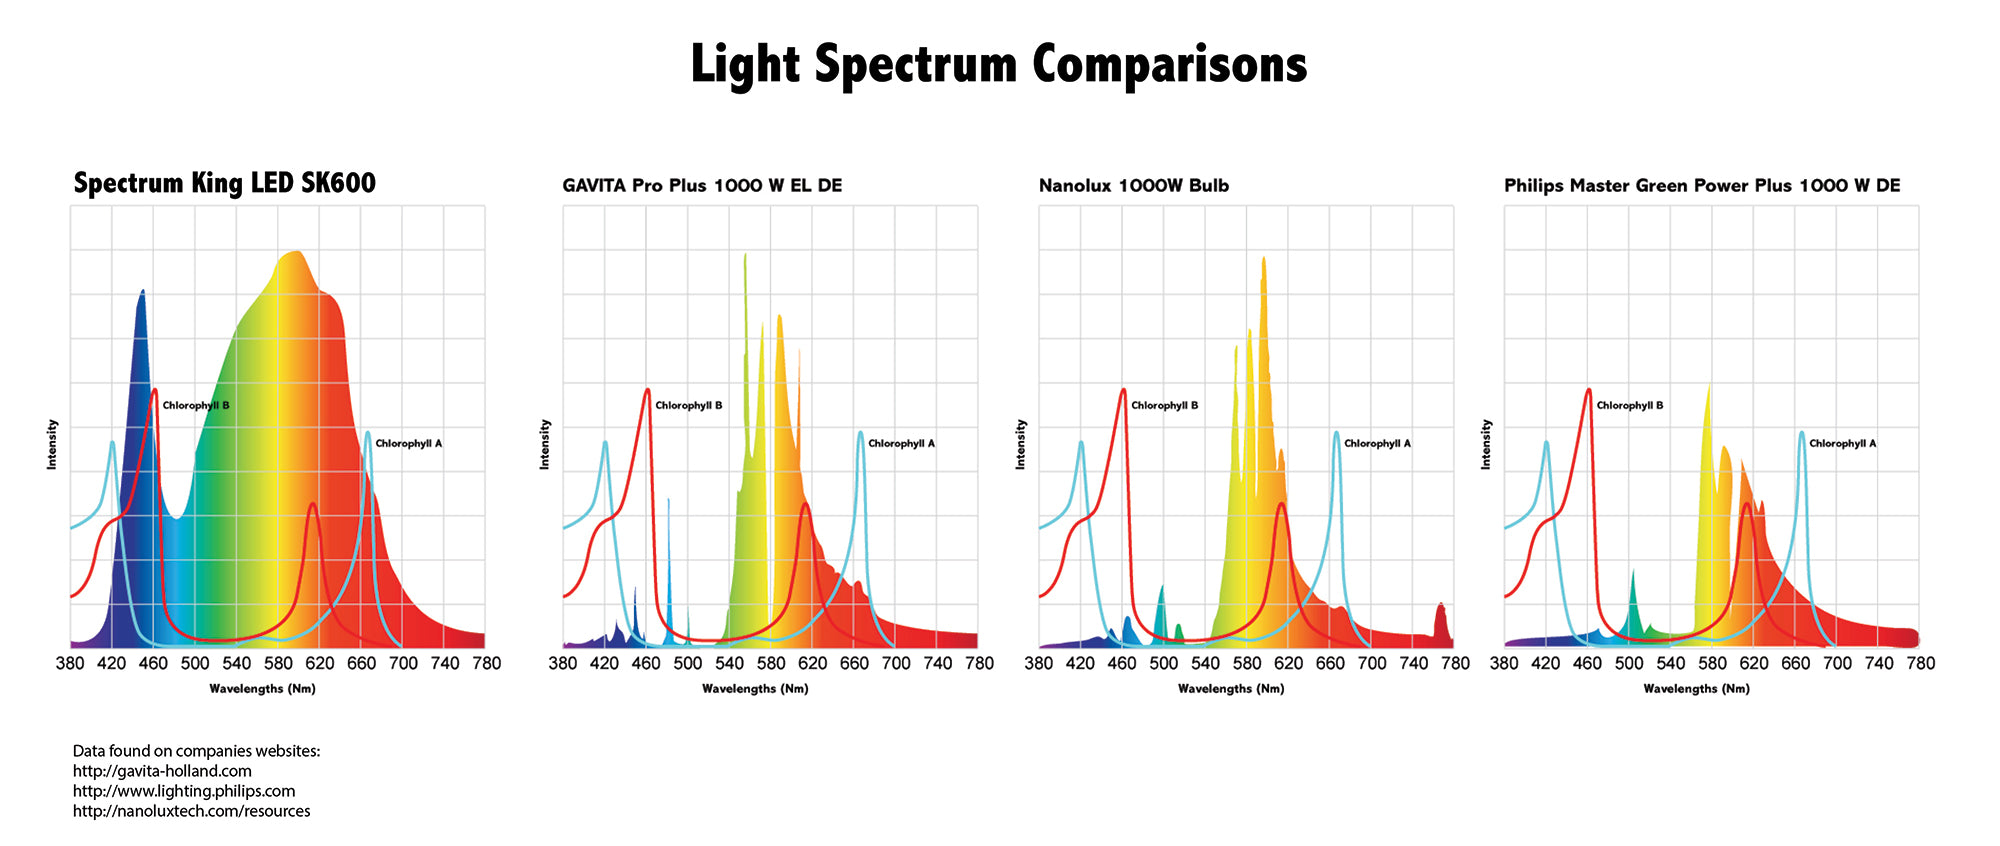 Spectrum_King_vs_HPS_brands_275398fd ae43 45a3 82d8 aa20ed2accbf?14507835919707497744 commercial grow lights vertical, greenhouse & indoor gardening